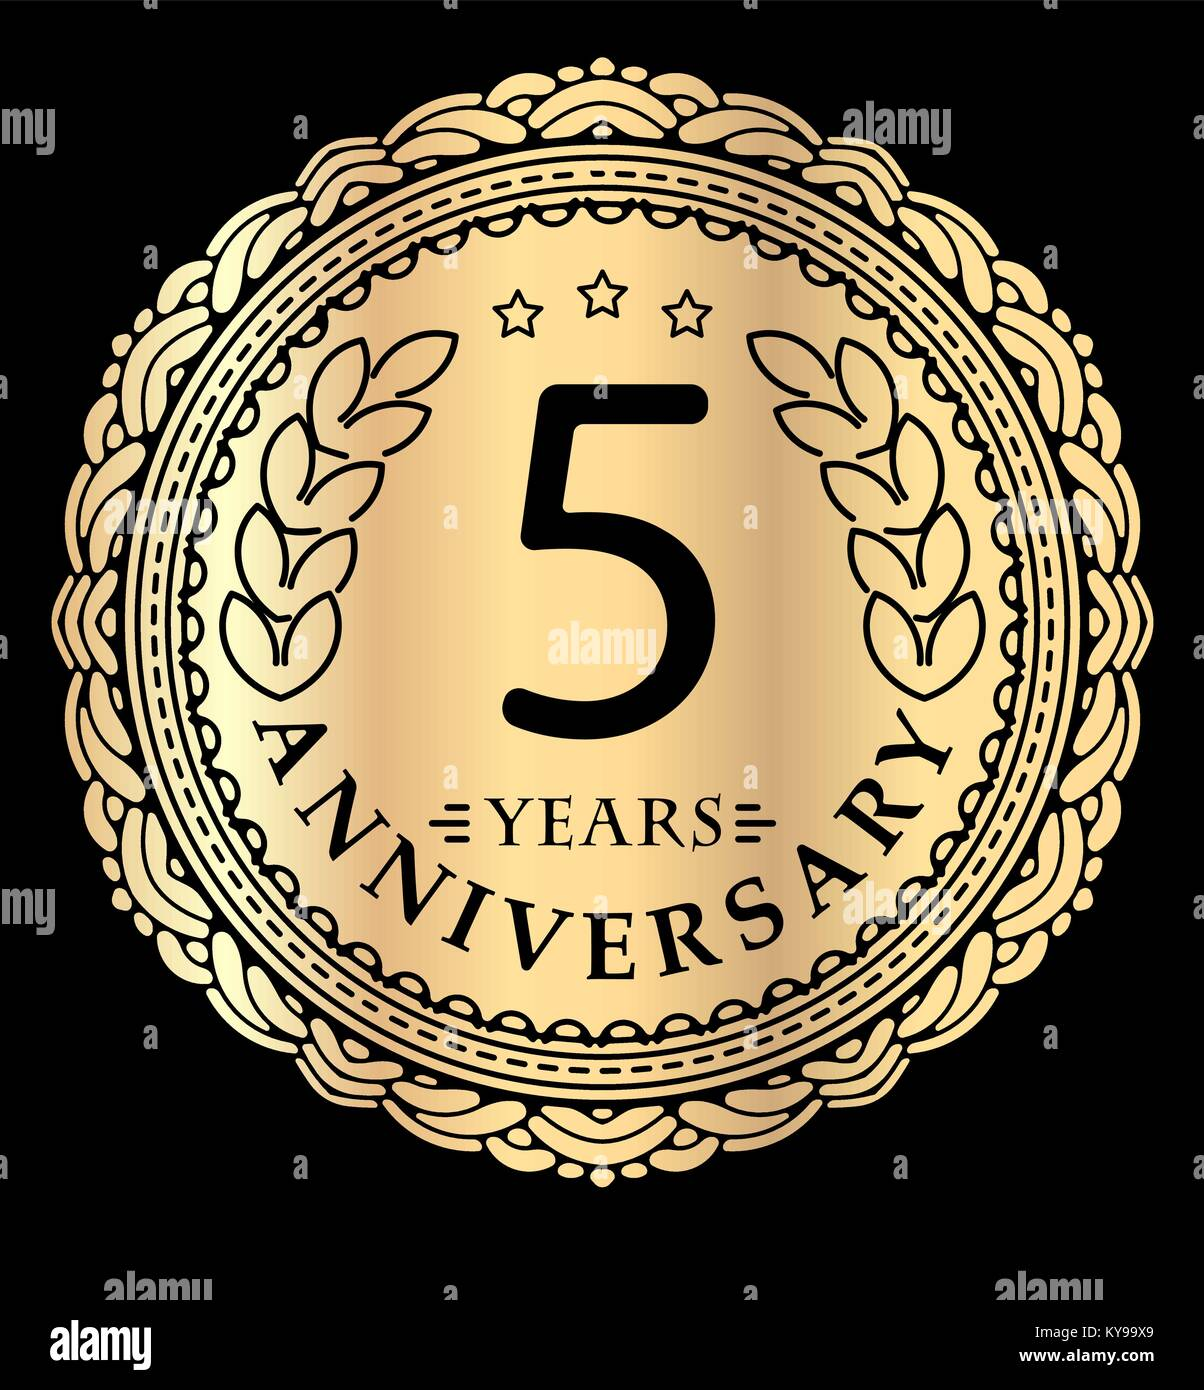 Vintage anniversary 5 years round emblem in mono line style retro vintage anniversary 5 years round emblem in mono line style retro styled vector decor in gold tones on black background biocorpaavc Gallery